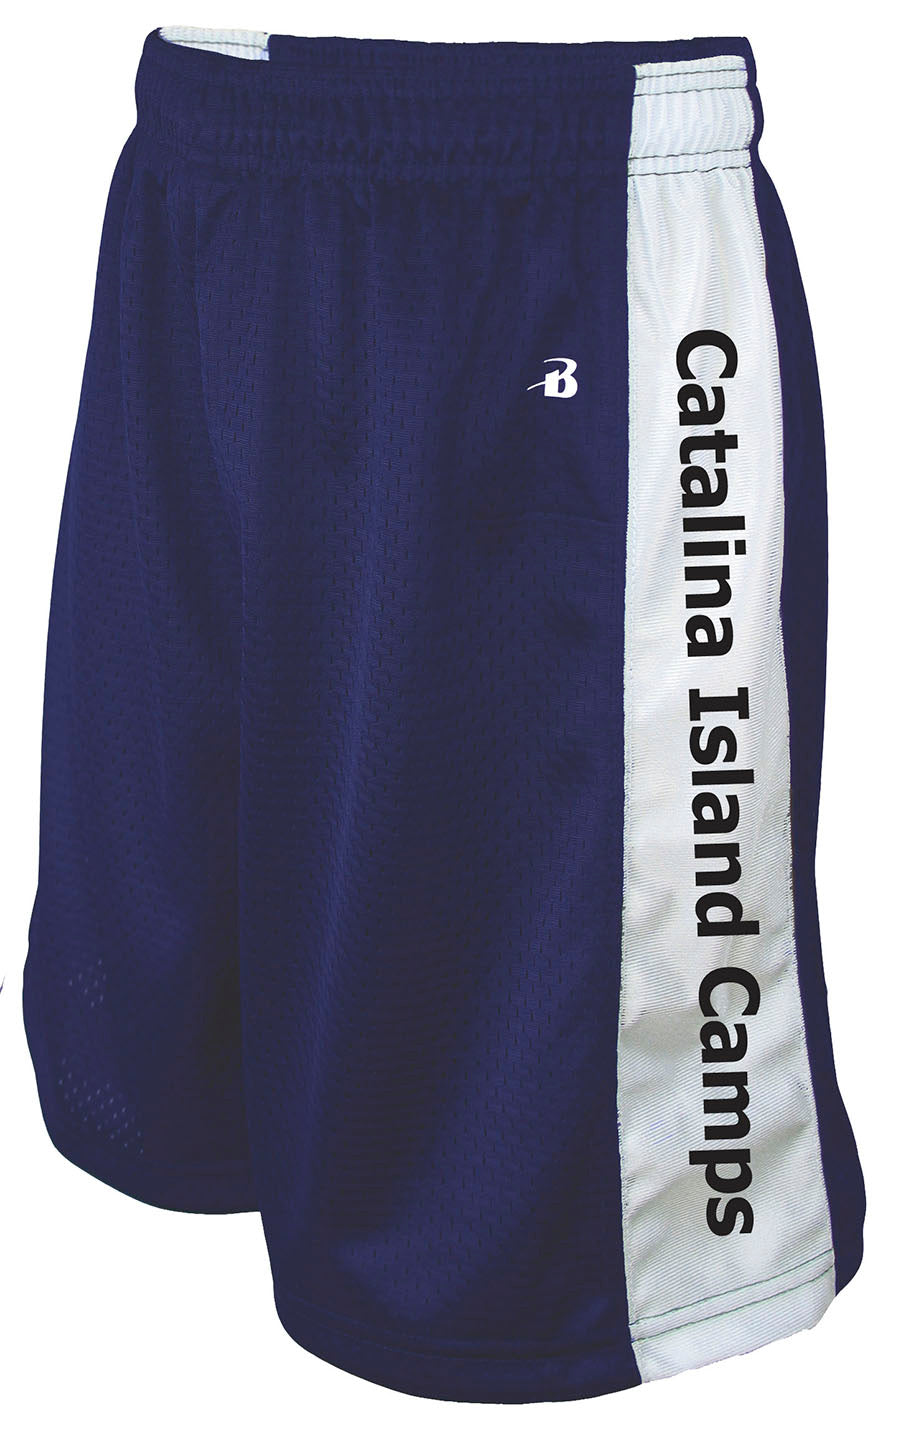 Catalina Island Camps Boy's Athletic Shorts